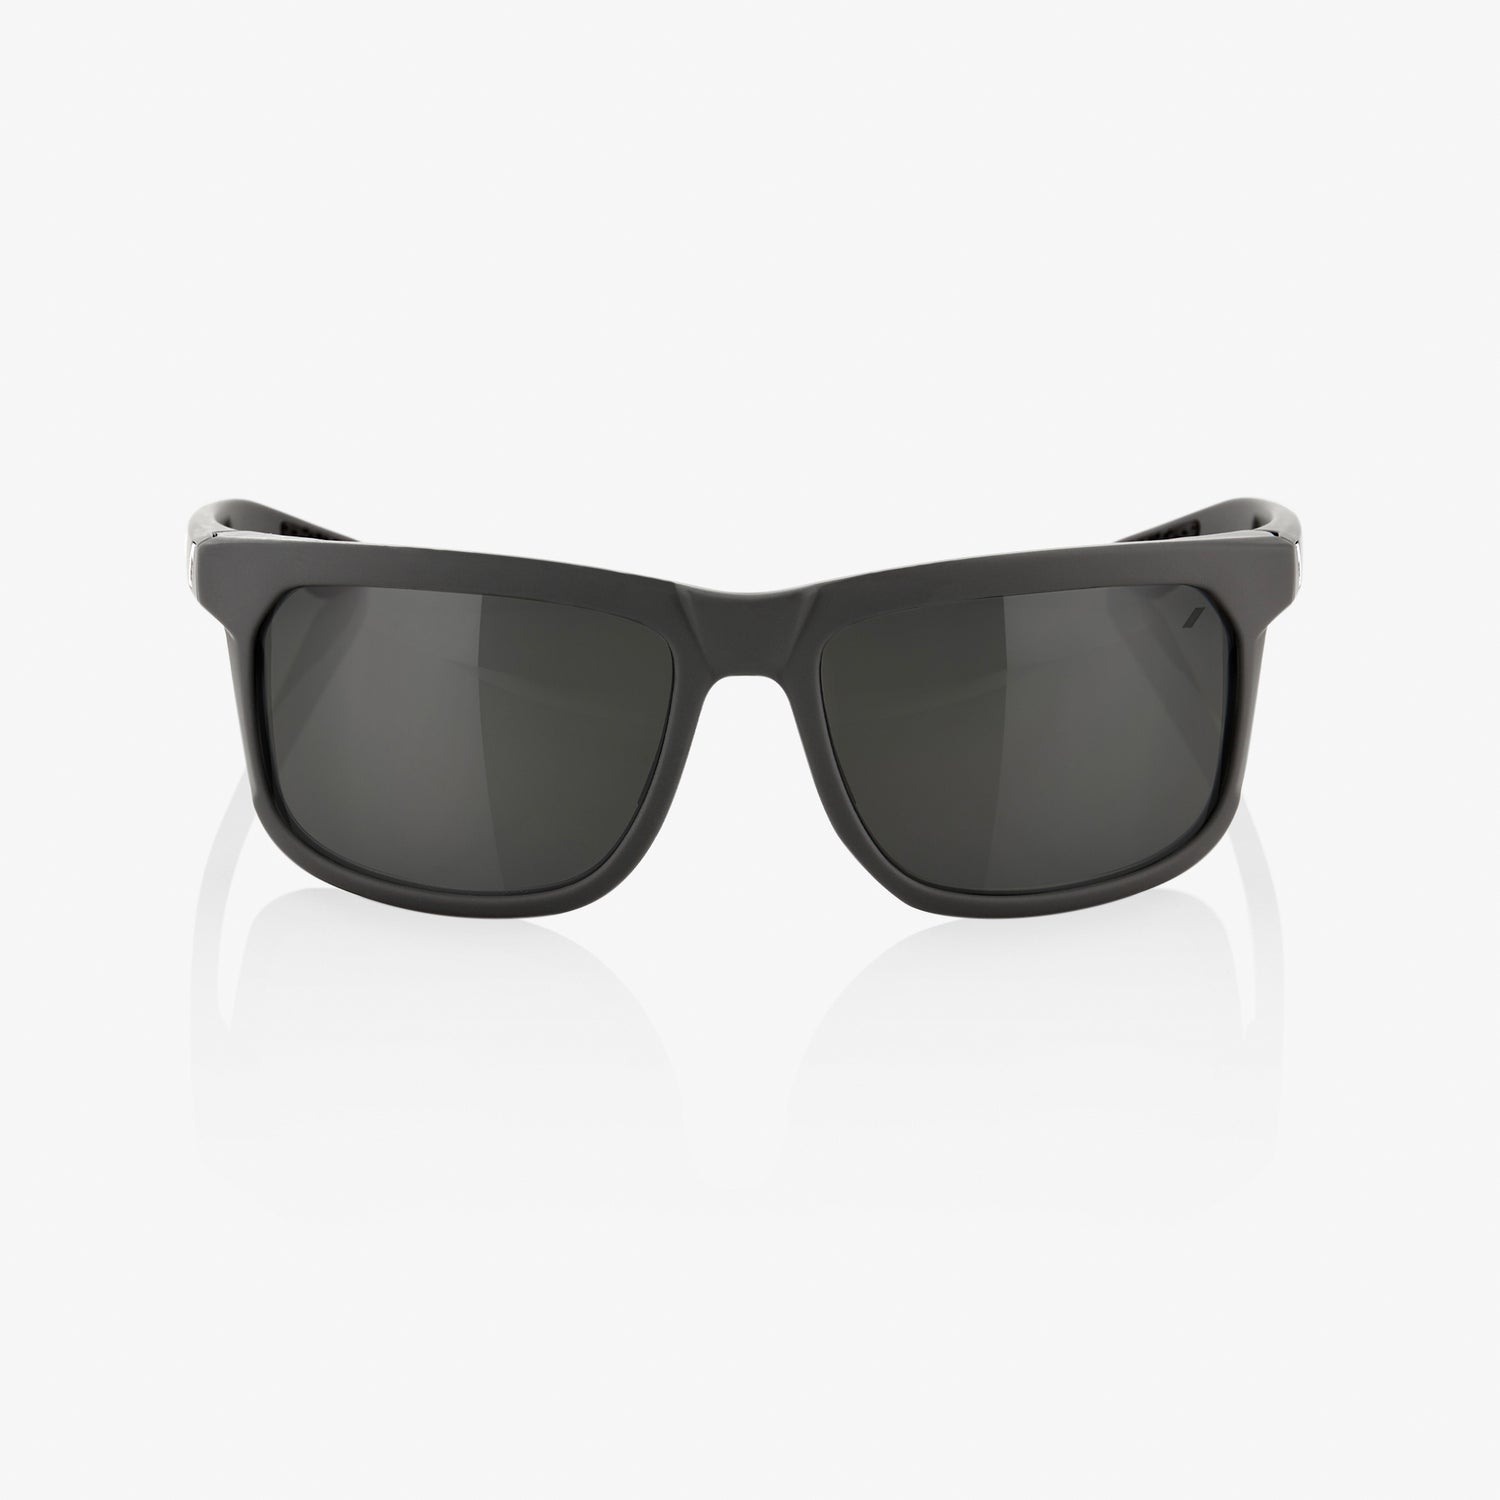 HAKAN - Soft Tact Cool Grey - Smoke Lens